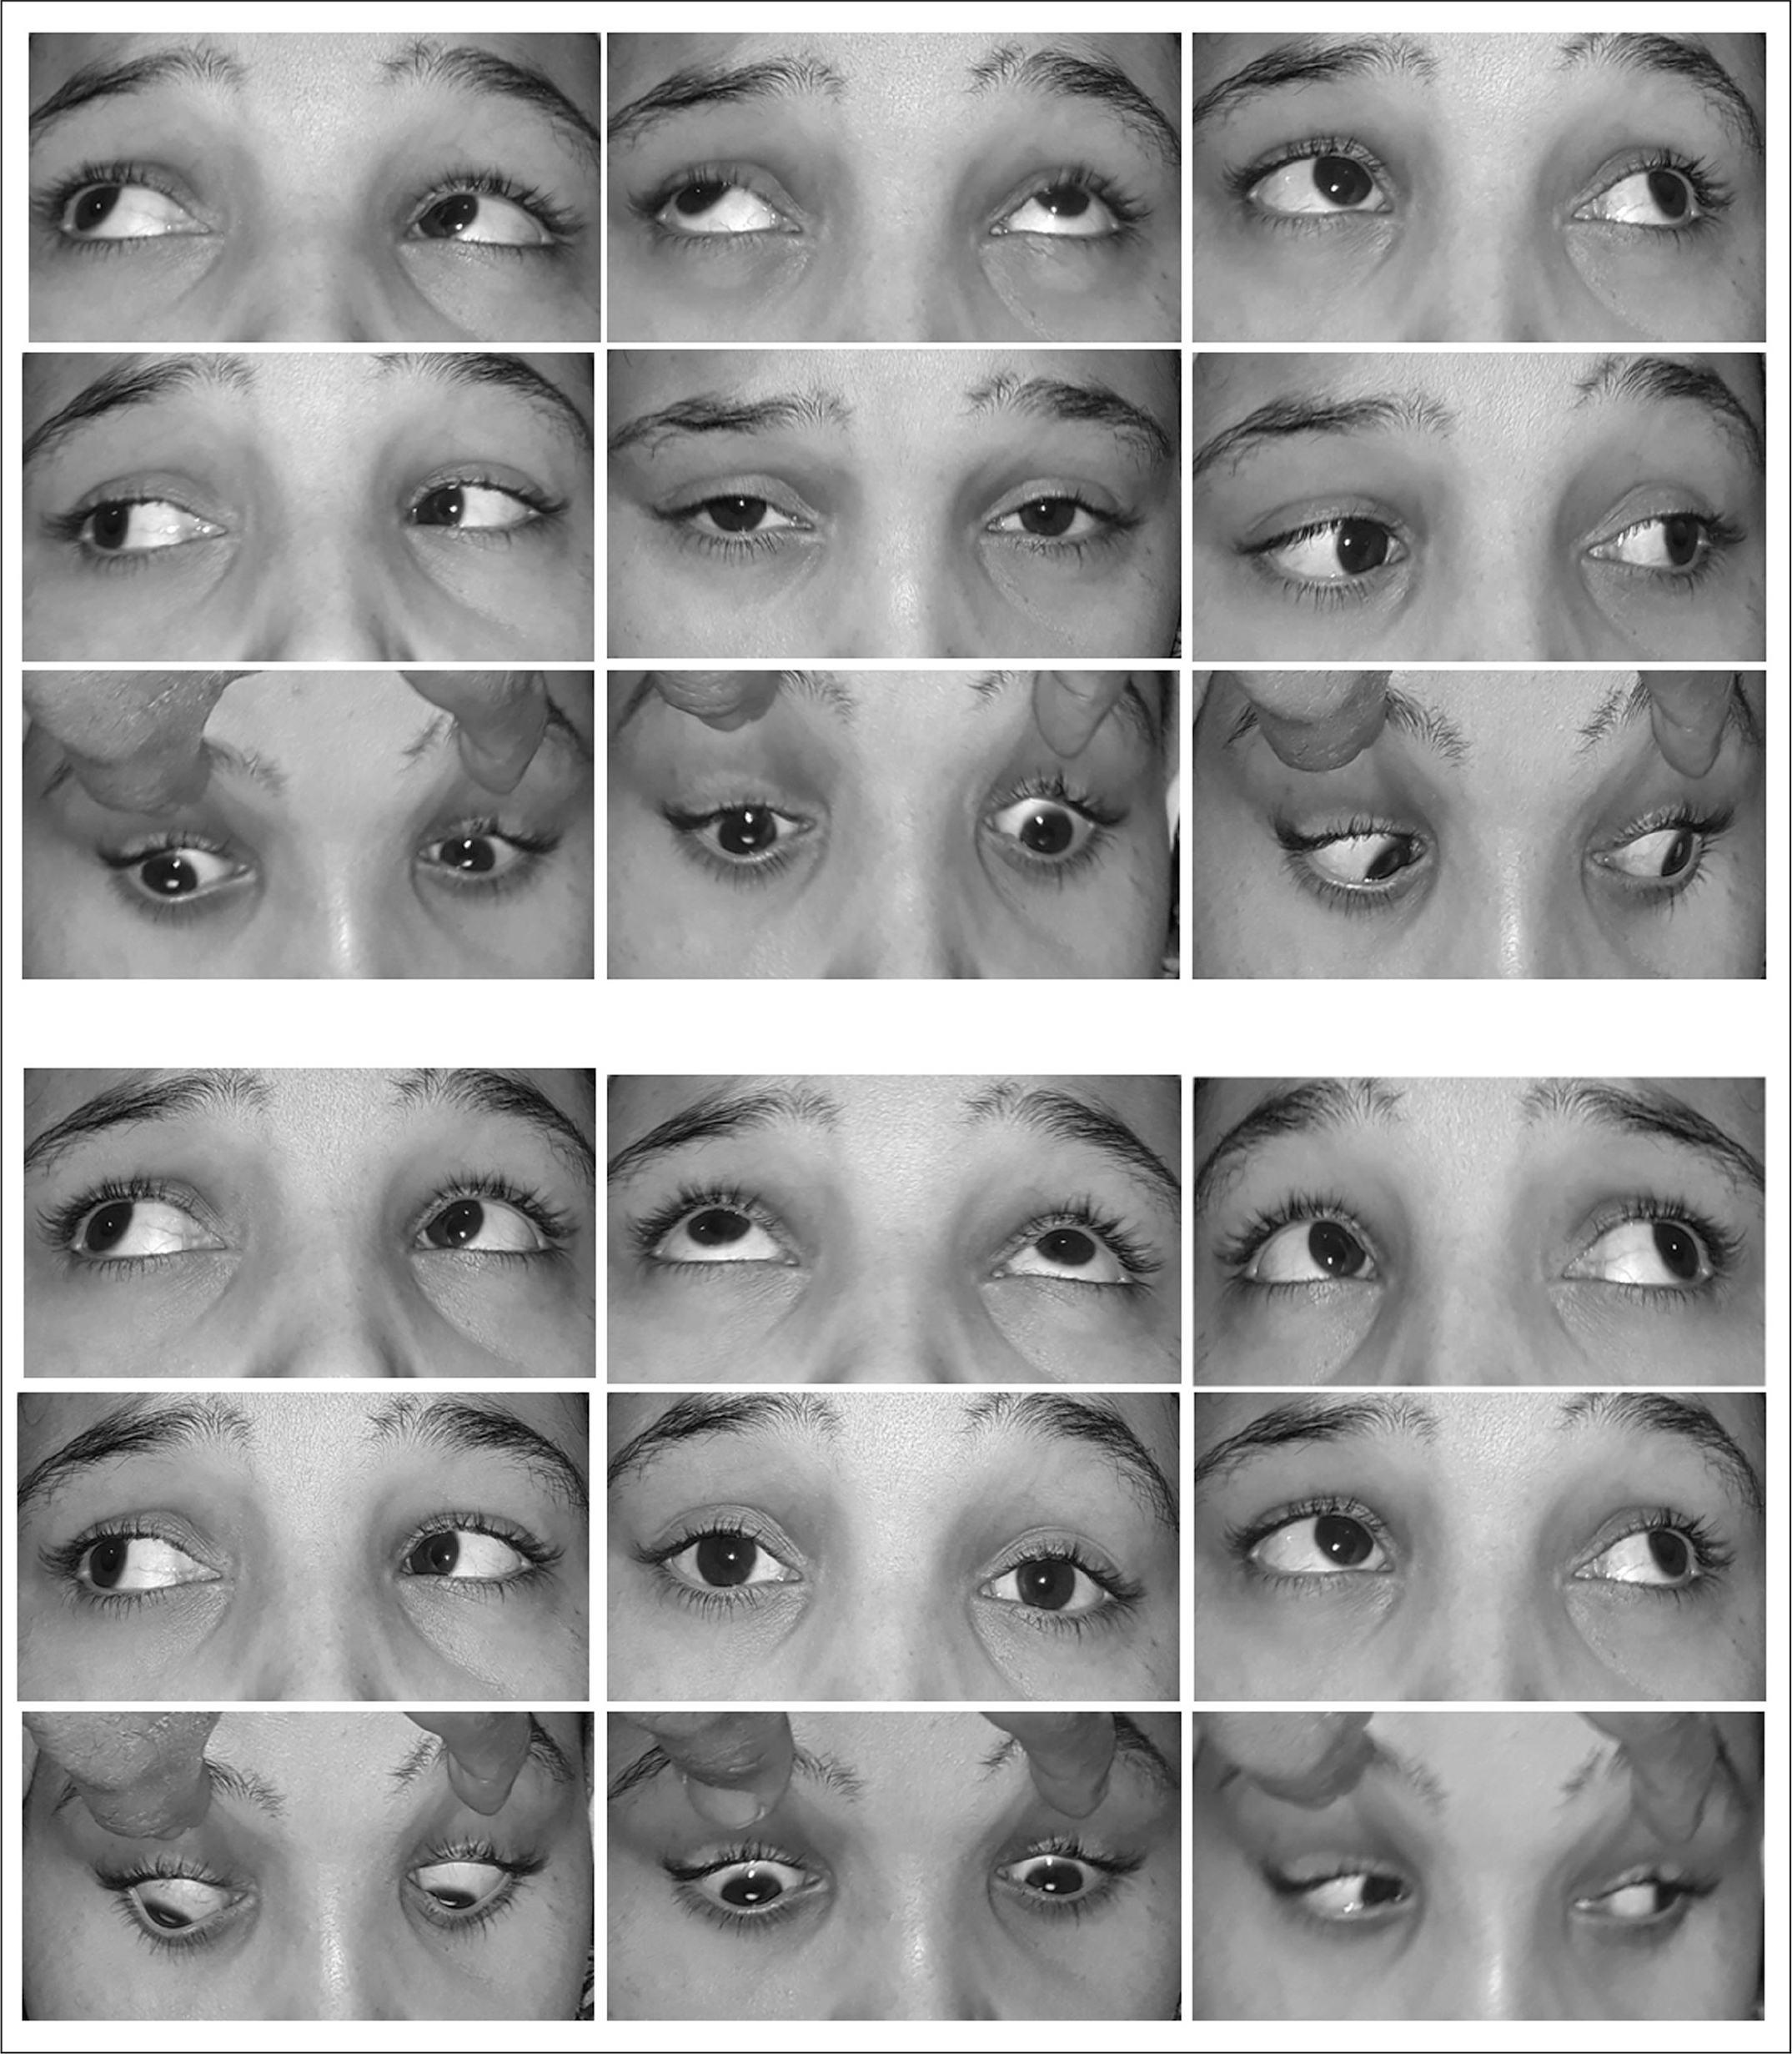 Top panels show preoperative photographs of a patient with large V-pattern exotropia with no oblique dysfunction. Bottom panels show improvement of the V-pattern 6 months after bilateral lateral rectus recession 5 mm with full-tendon upward transposition.